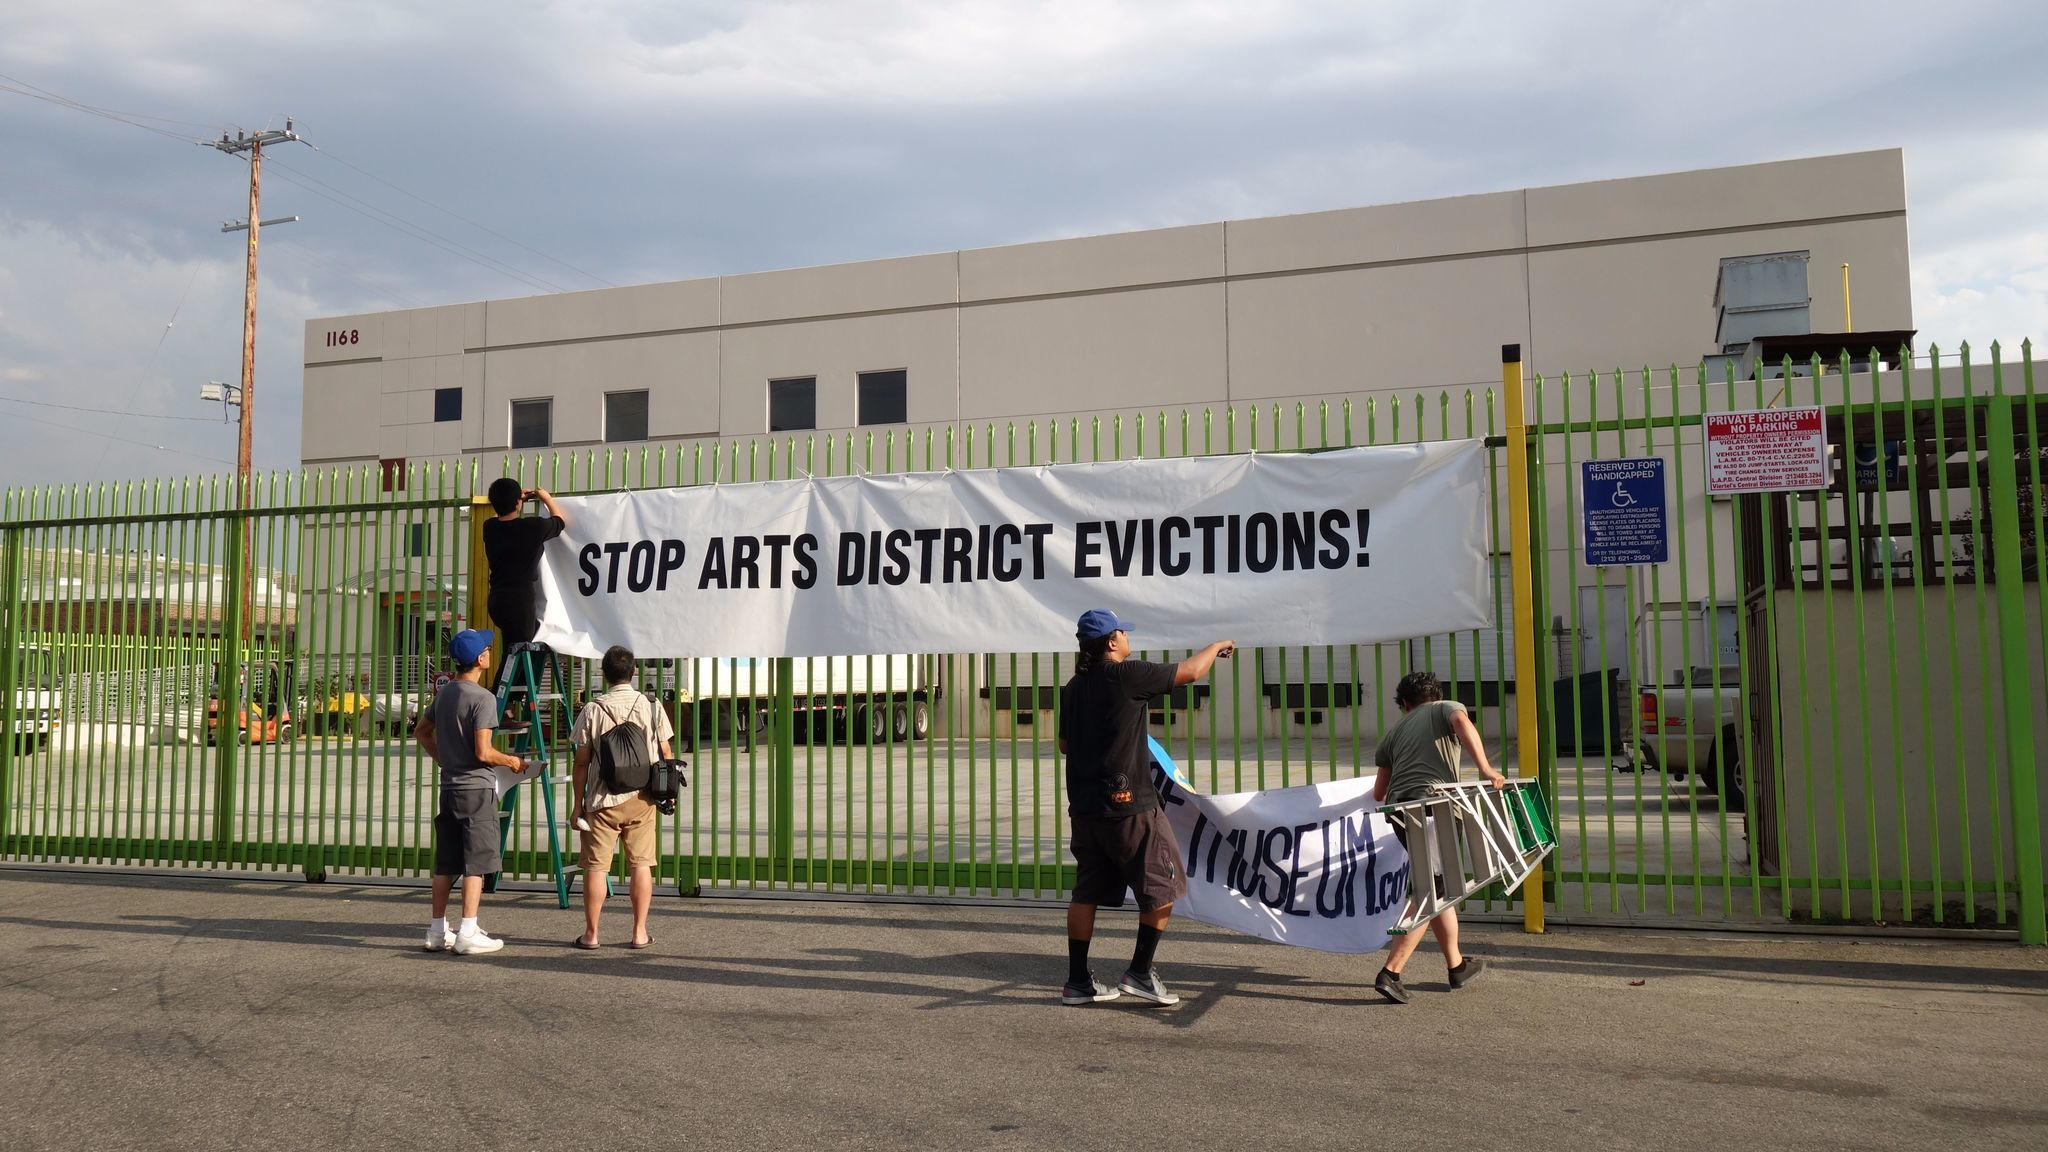 Artists place a sign protesting evictions in the Arts District outside of Seaton Street lofts.